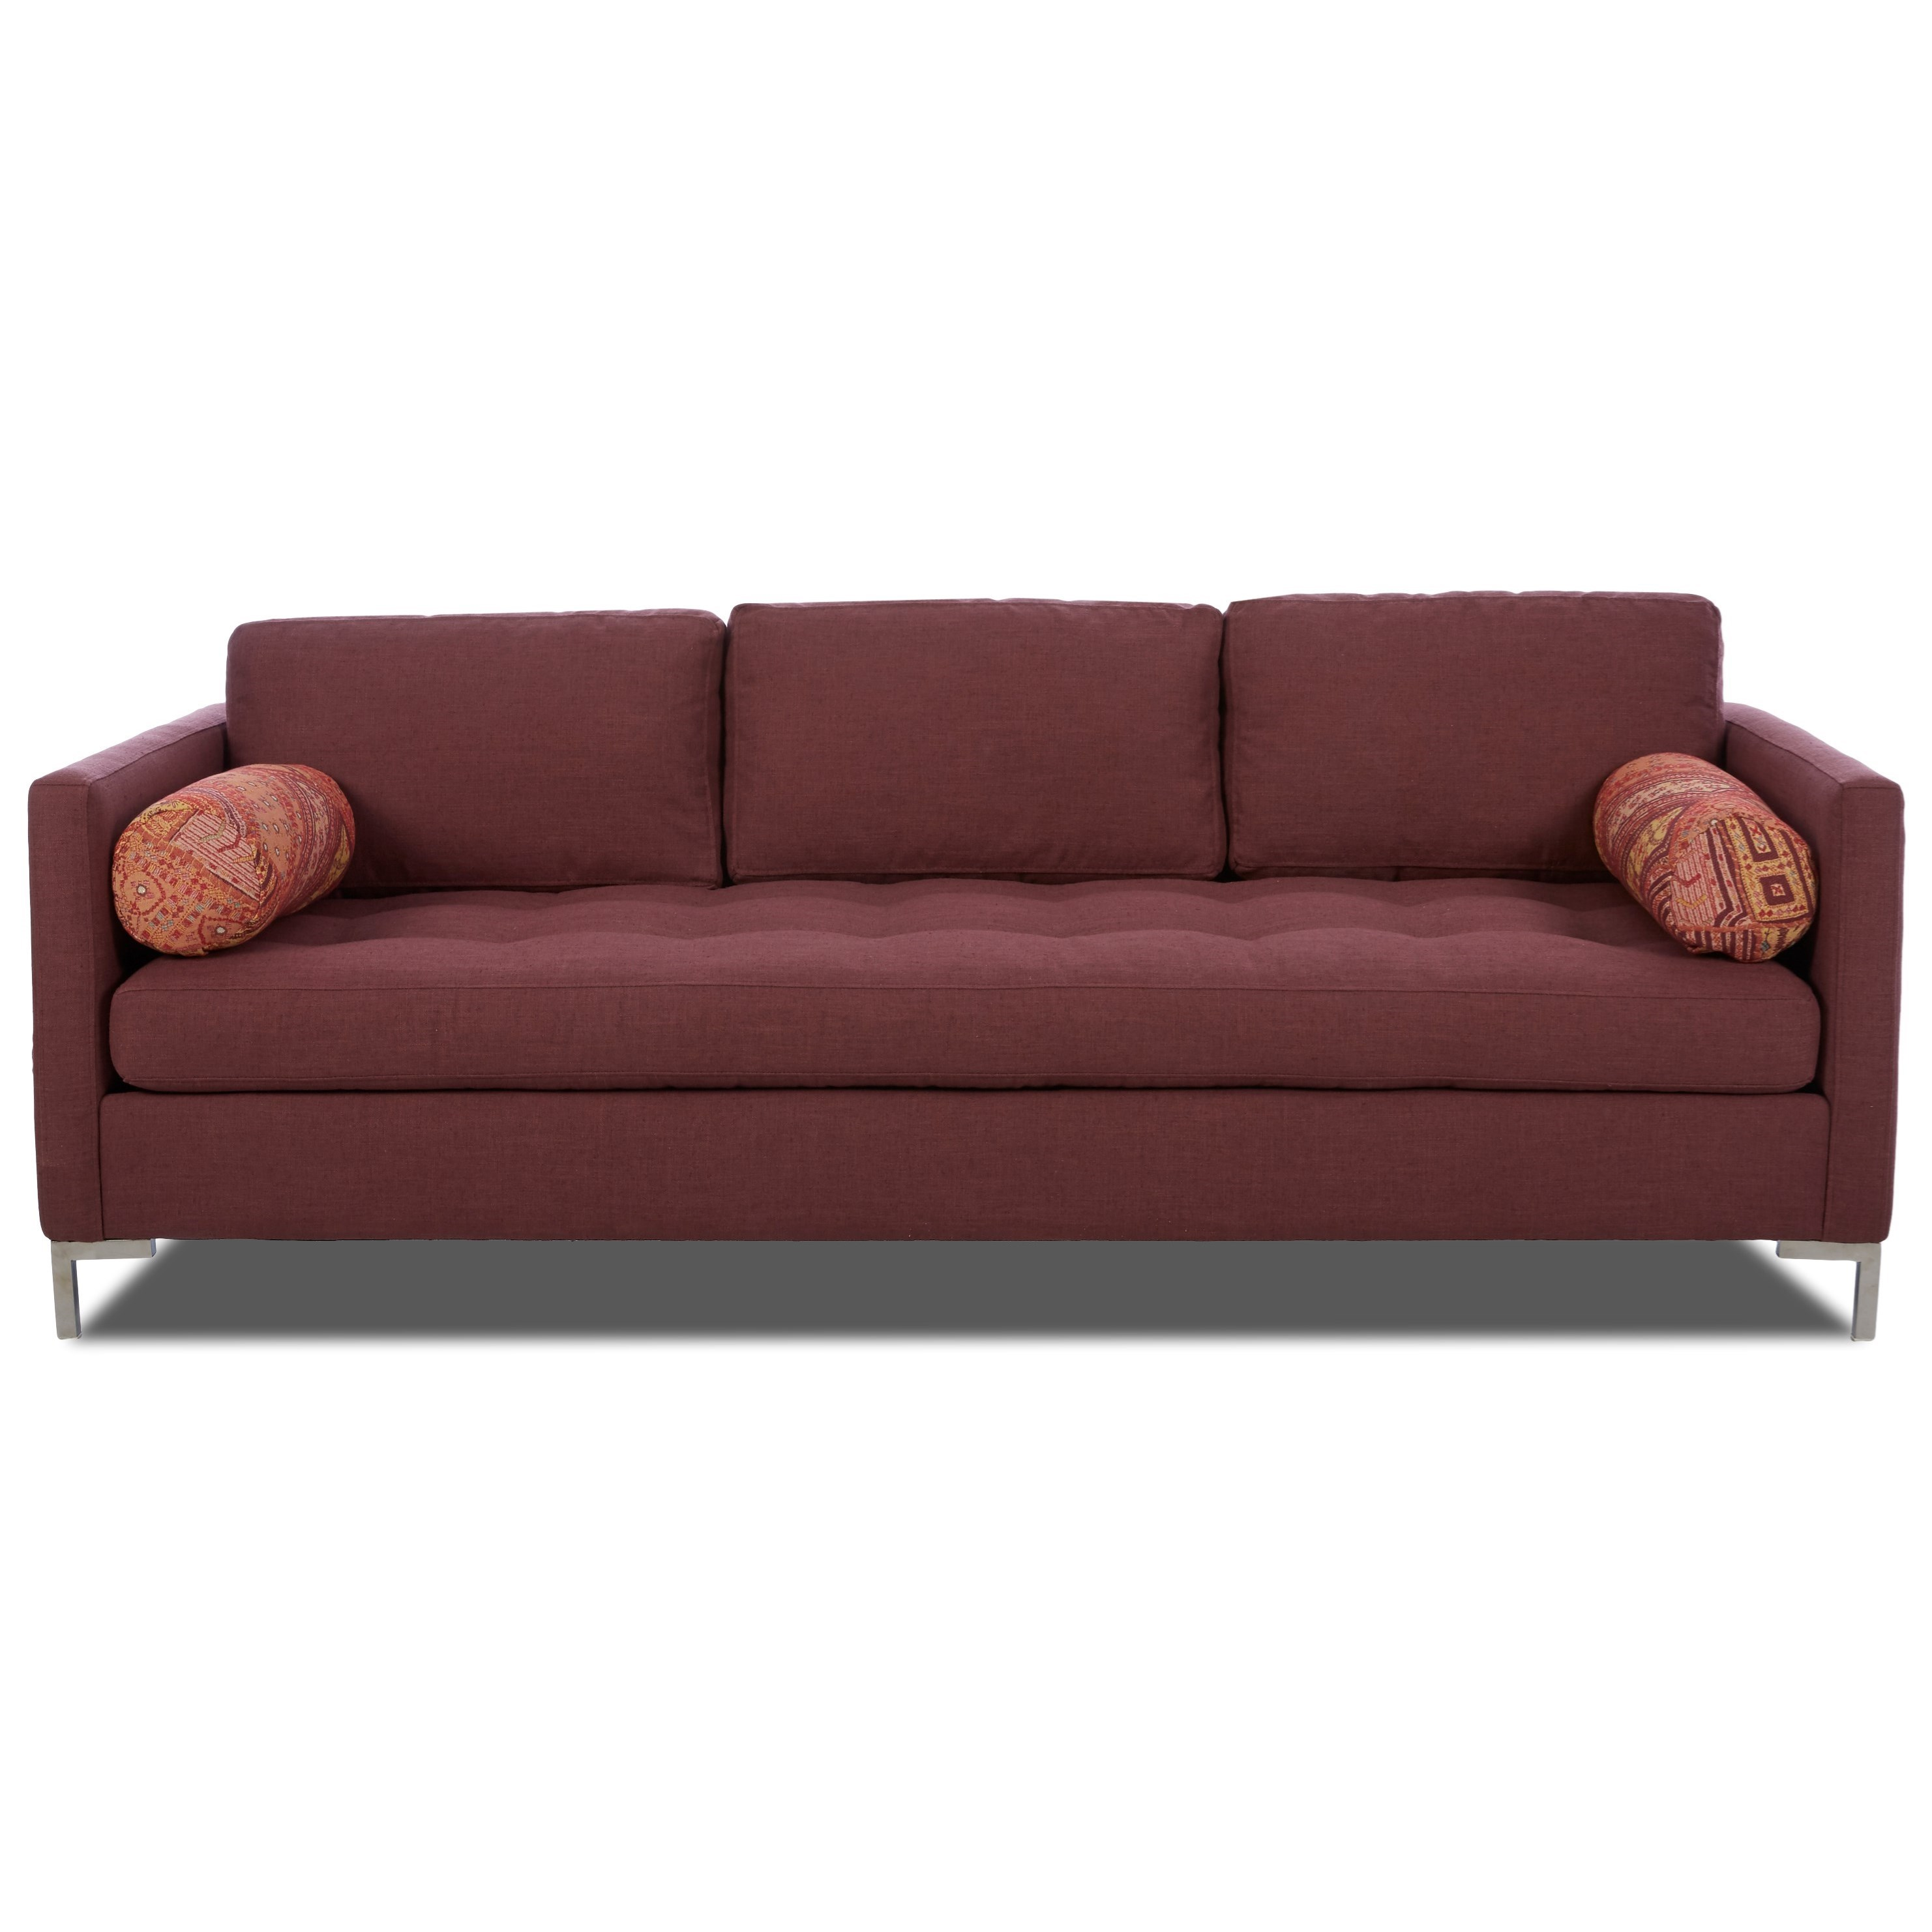 Uptown Klaussner Contemporary Sofa by Klaussner at Lapeer Furniture & Mattress Center